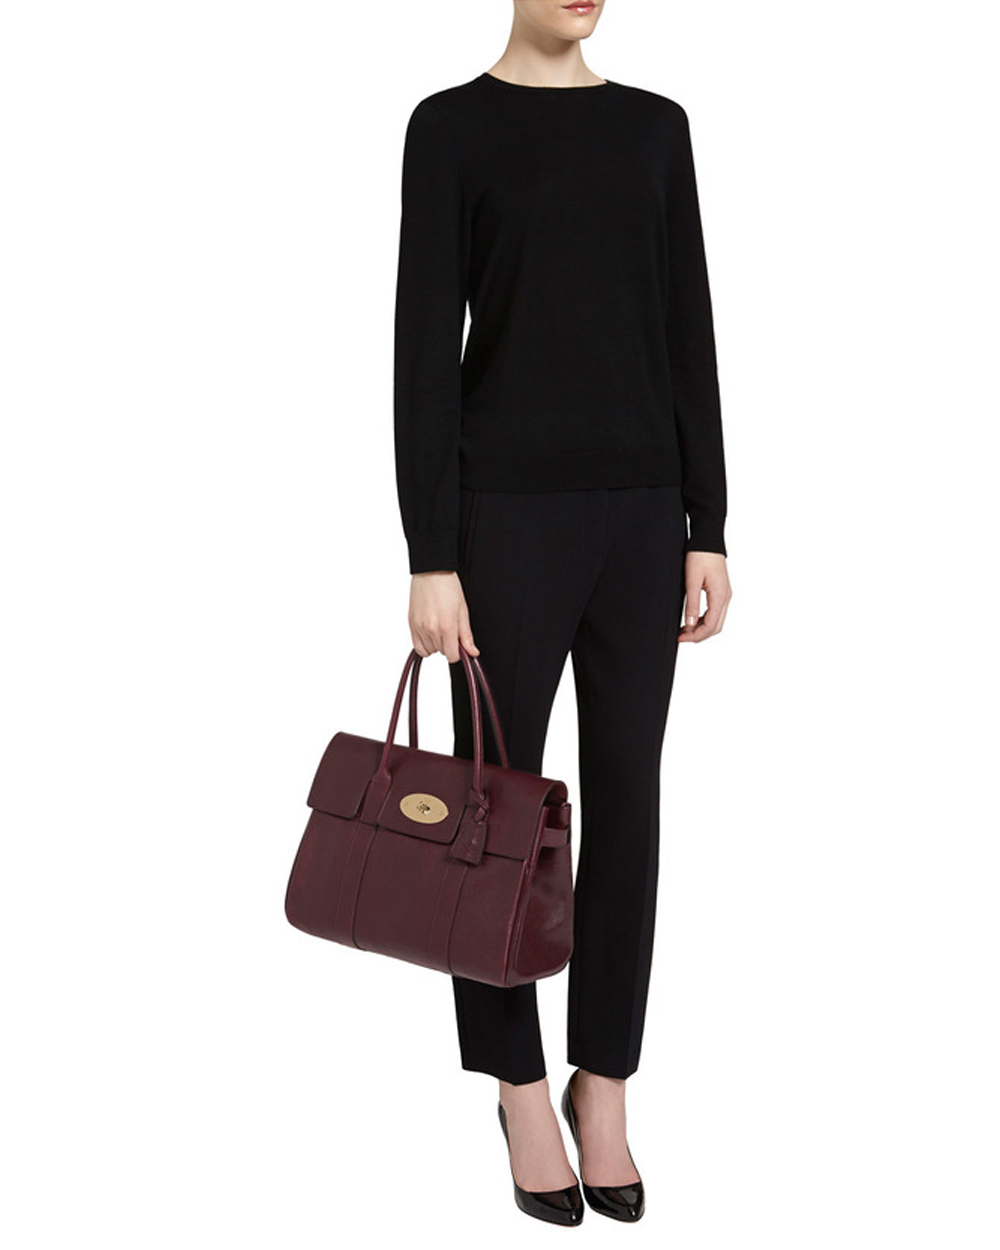 italy 2016 a w mulberry small new bayswater oxblood natural grain leather  hh3930 oxblood f60e0 1a2a0  good gallery. womens mulberry bayswater afb21  0810e 0ebe385279e64